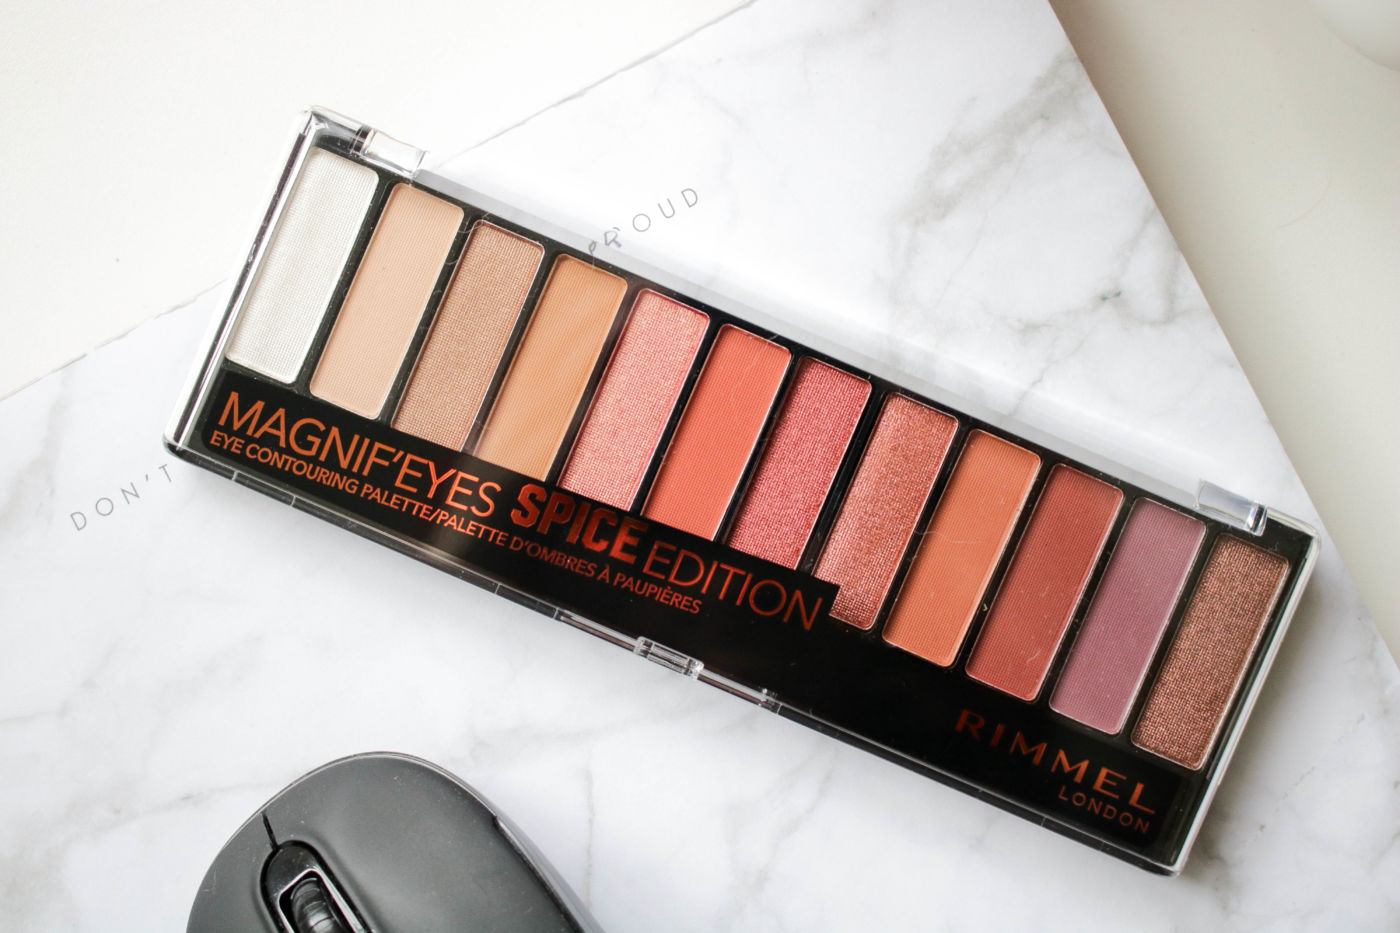 Rimmel Magnif'eyes Spice Edition Palette Review + Swatches